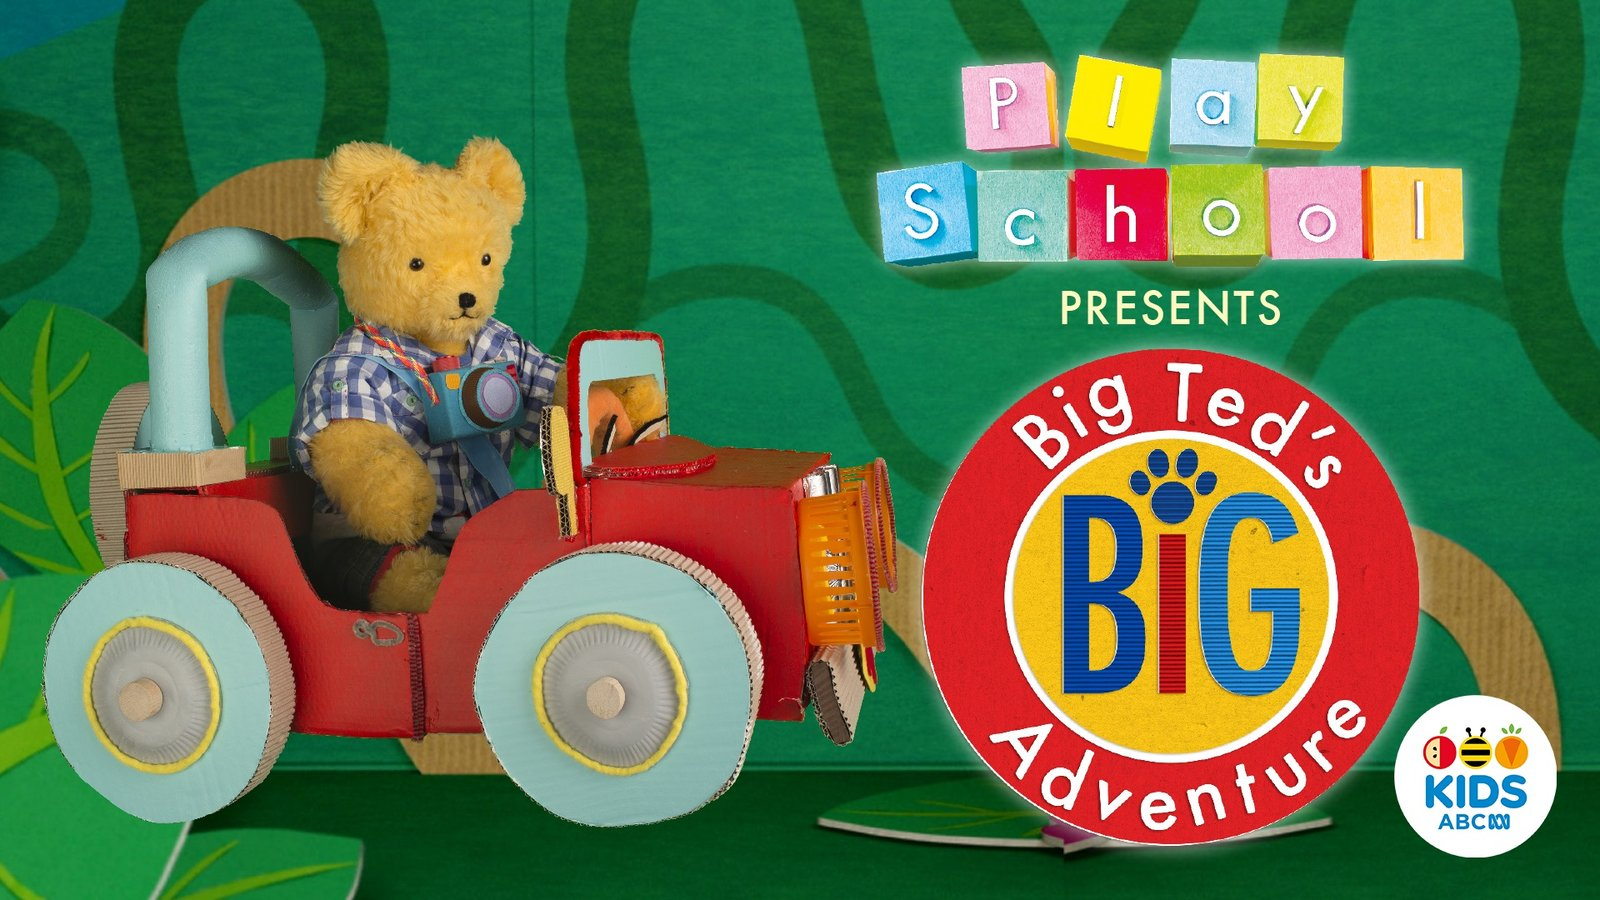 Big Ted's Big Adventure